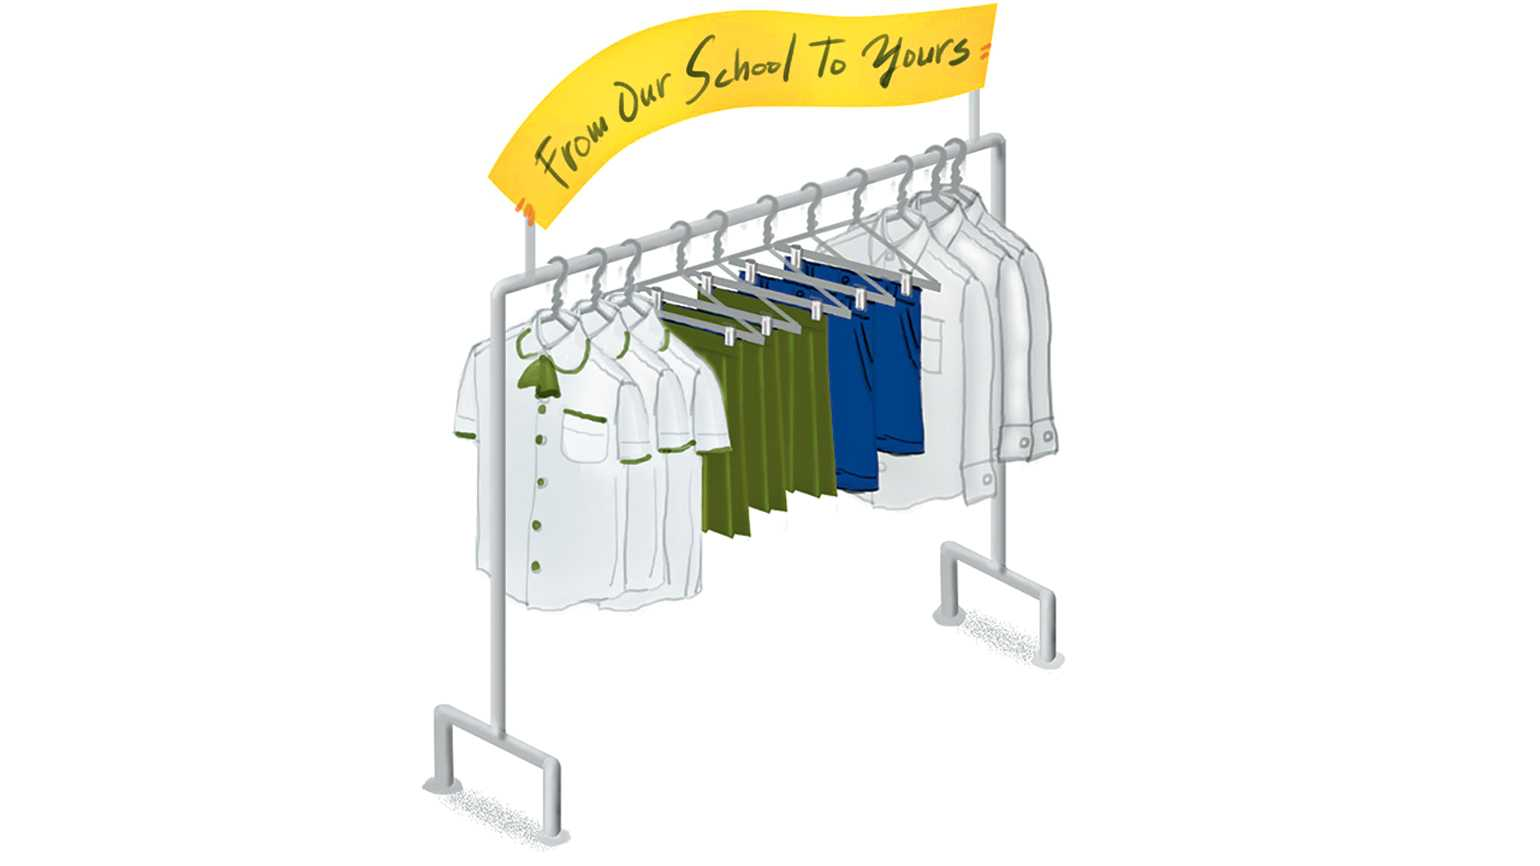 A rack of school uniforms with a banner that reads 'From Our School To Yours'